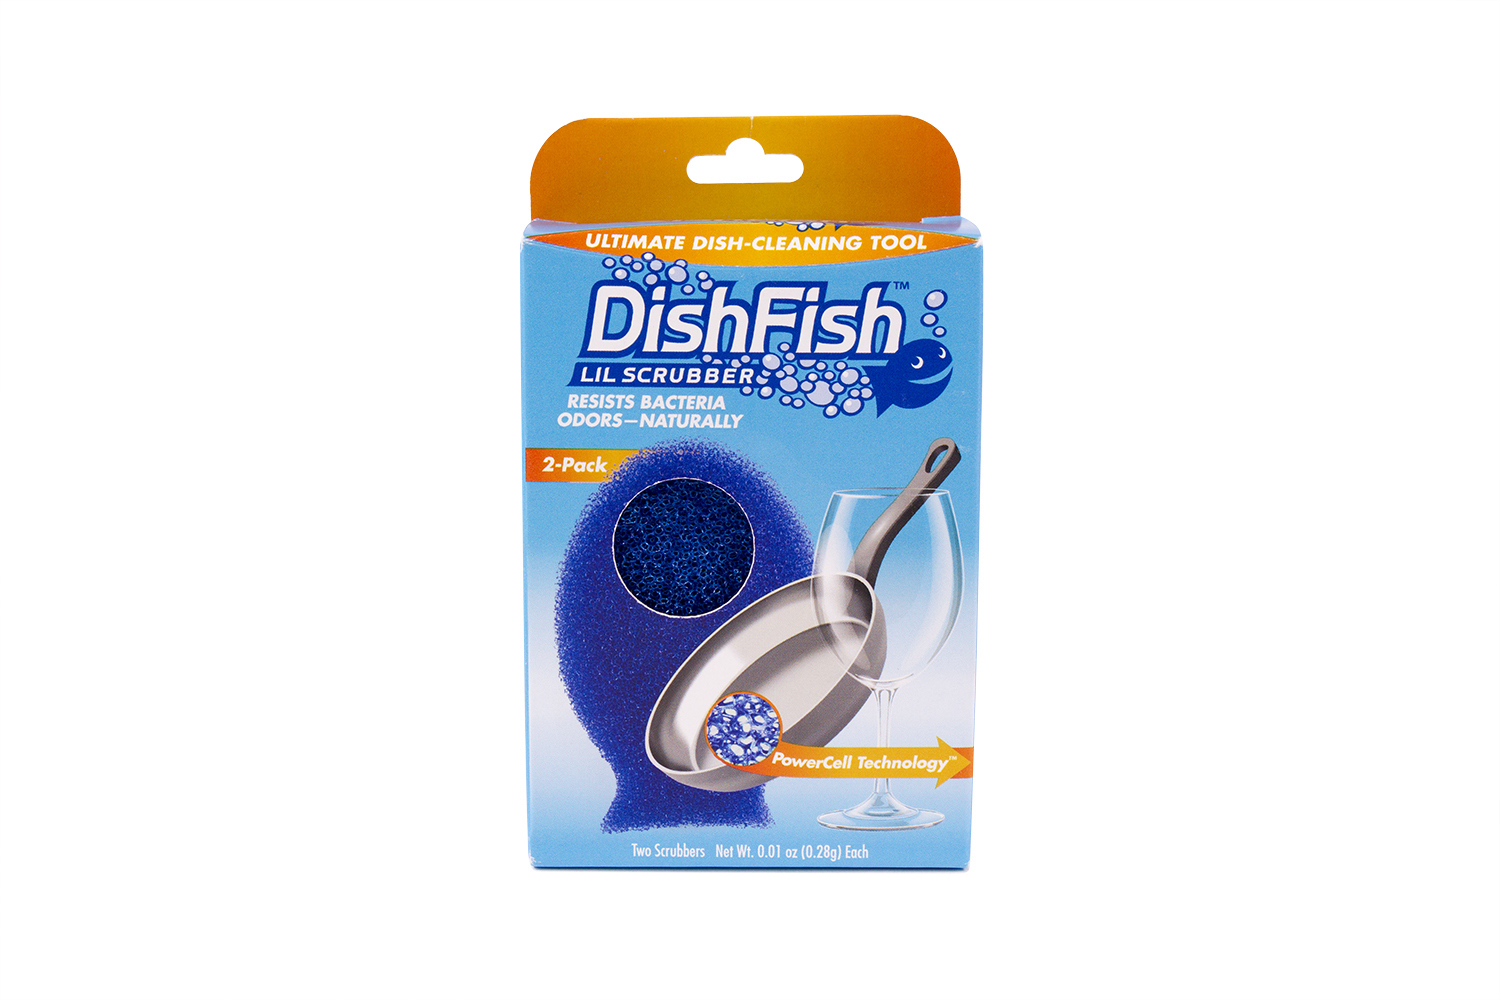 dishfish-lil-scrubber-front-package.jpg